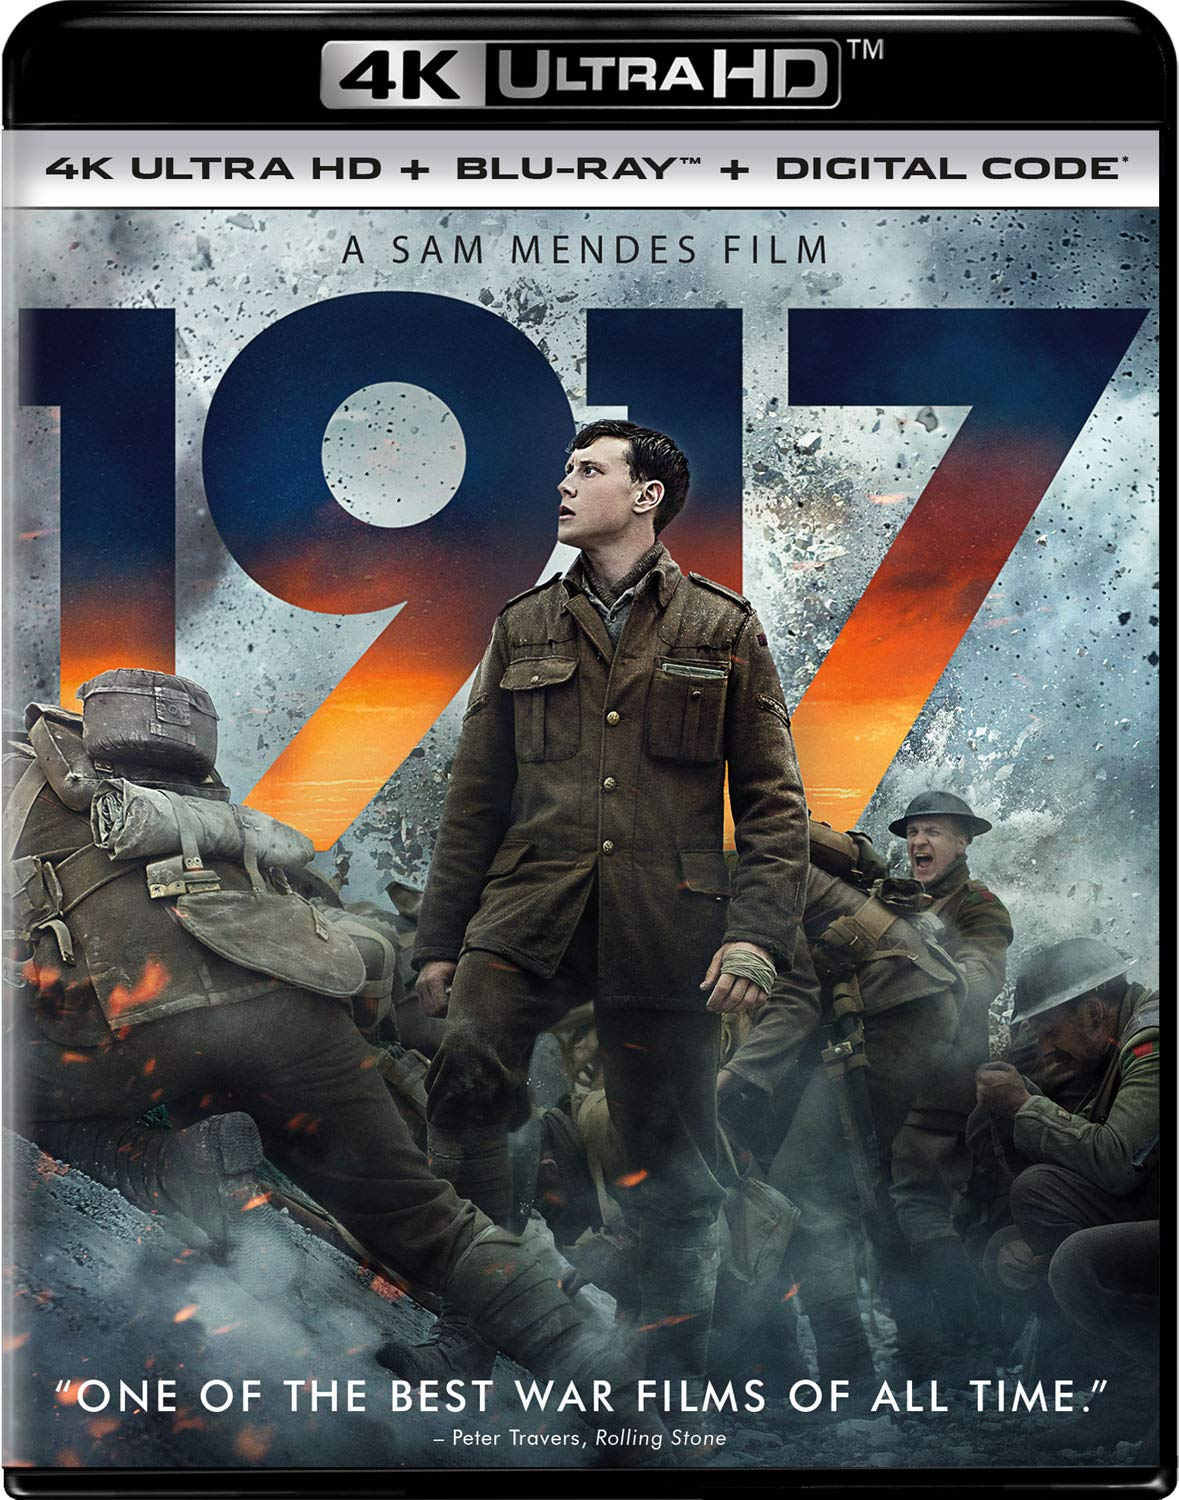 Amazon Com 1917 Blu Ray George Mackay Dean Charles Chapman Mark Strong Andrew Scott Richard Madden Colin Firth Benedict Cumberbatch Sam Mendes Sam Mendes Pippa Harris Jayne Ann Tenggren Callum Mcdougall Brian Oliver Sam Mendes Krysty